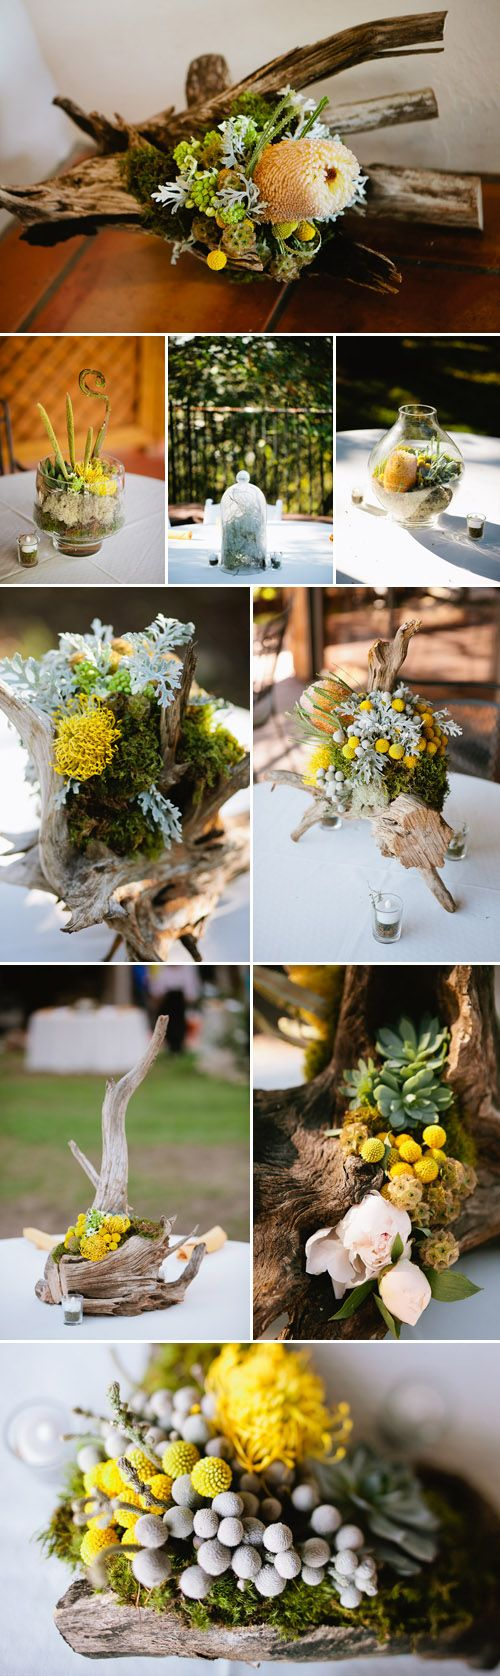 #driftwood #centerpieces  Great construction ideas. Picture with a splash of color or each piece of driftwood having a few small pops of the favorite flowers scattered, designed or one pop on them